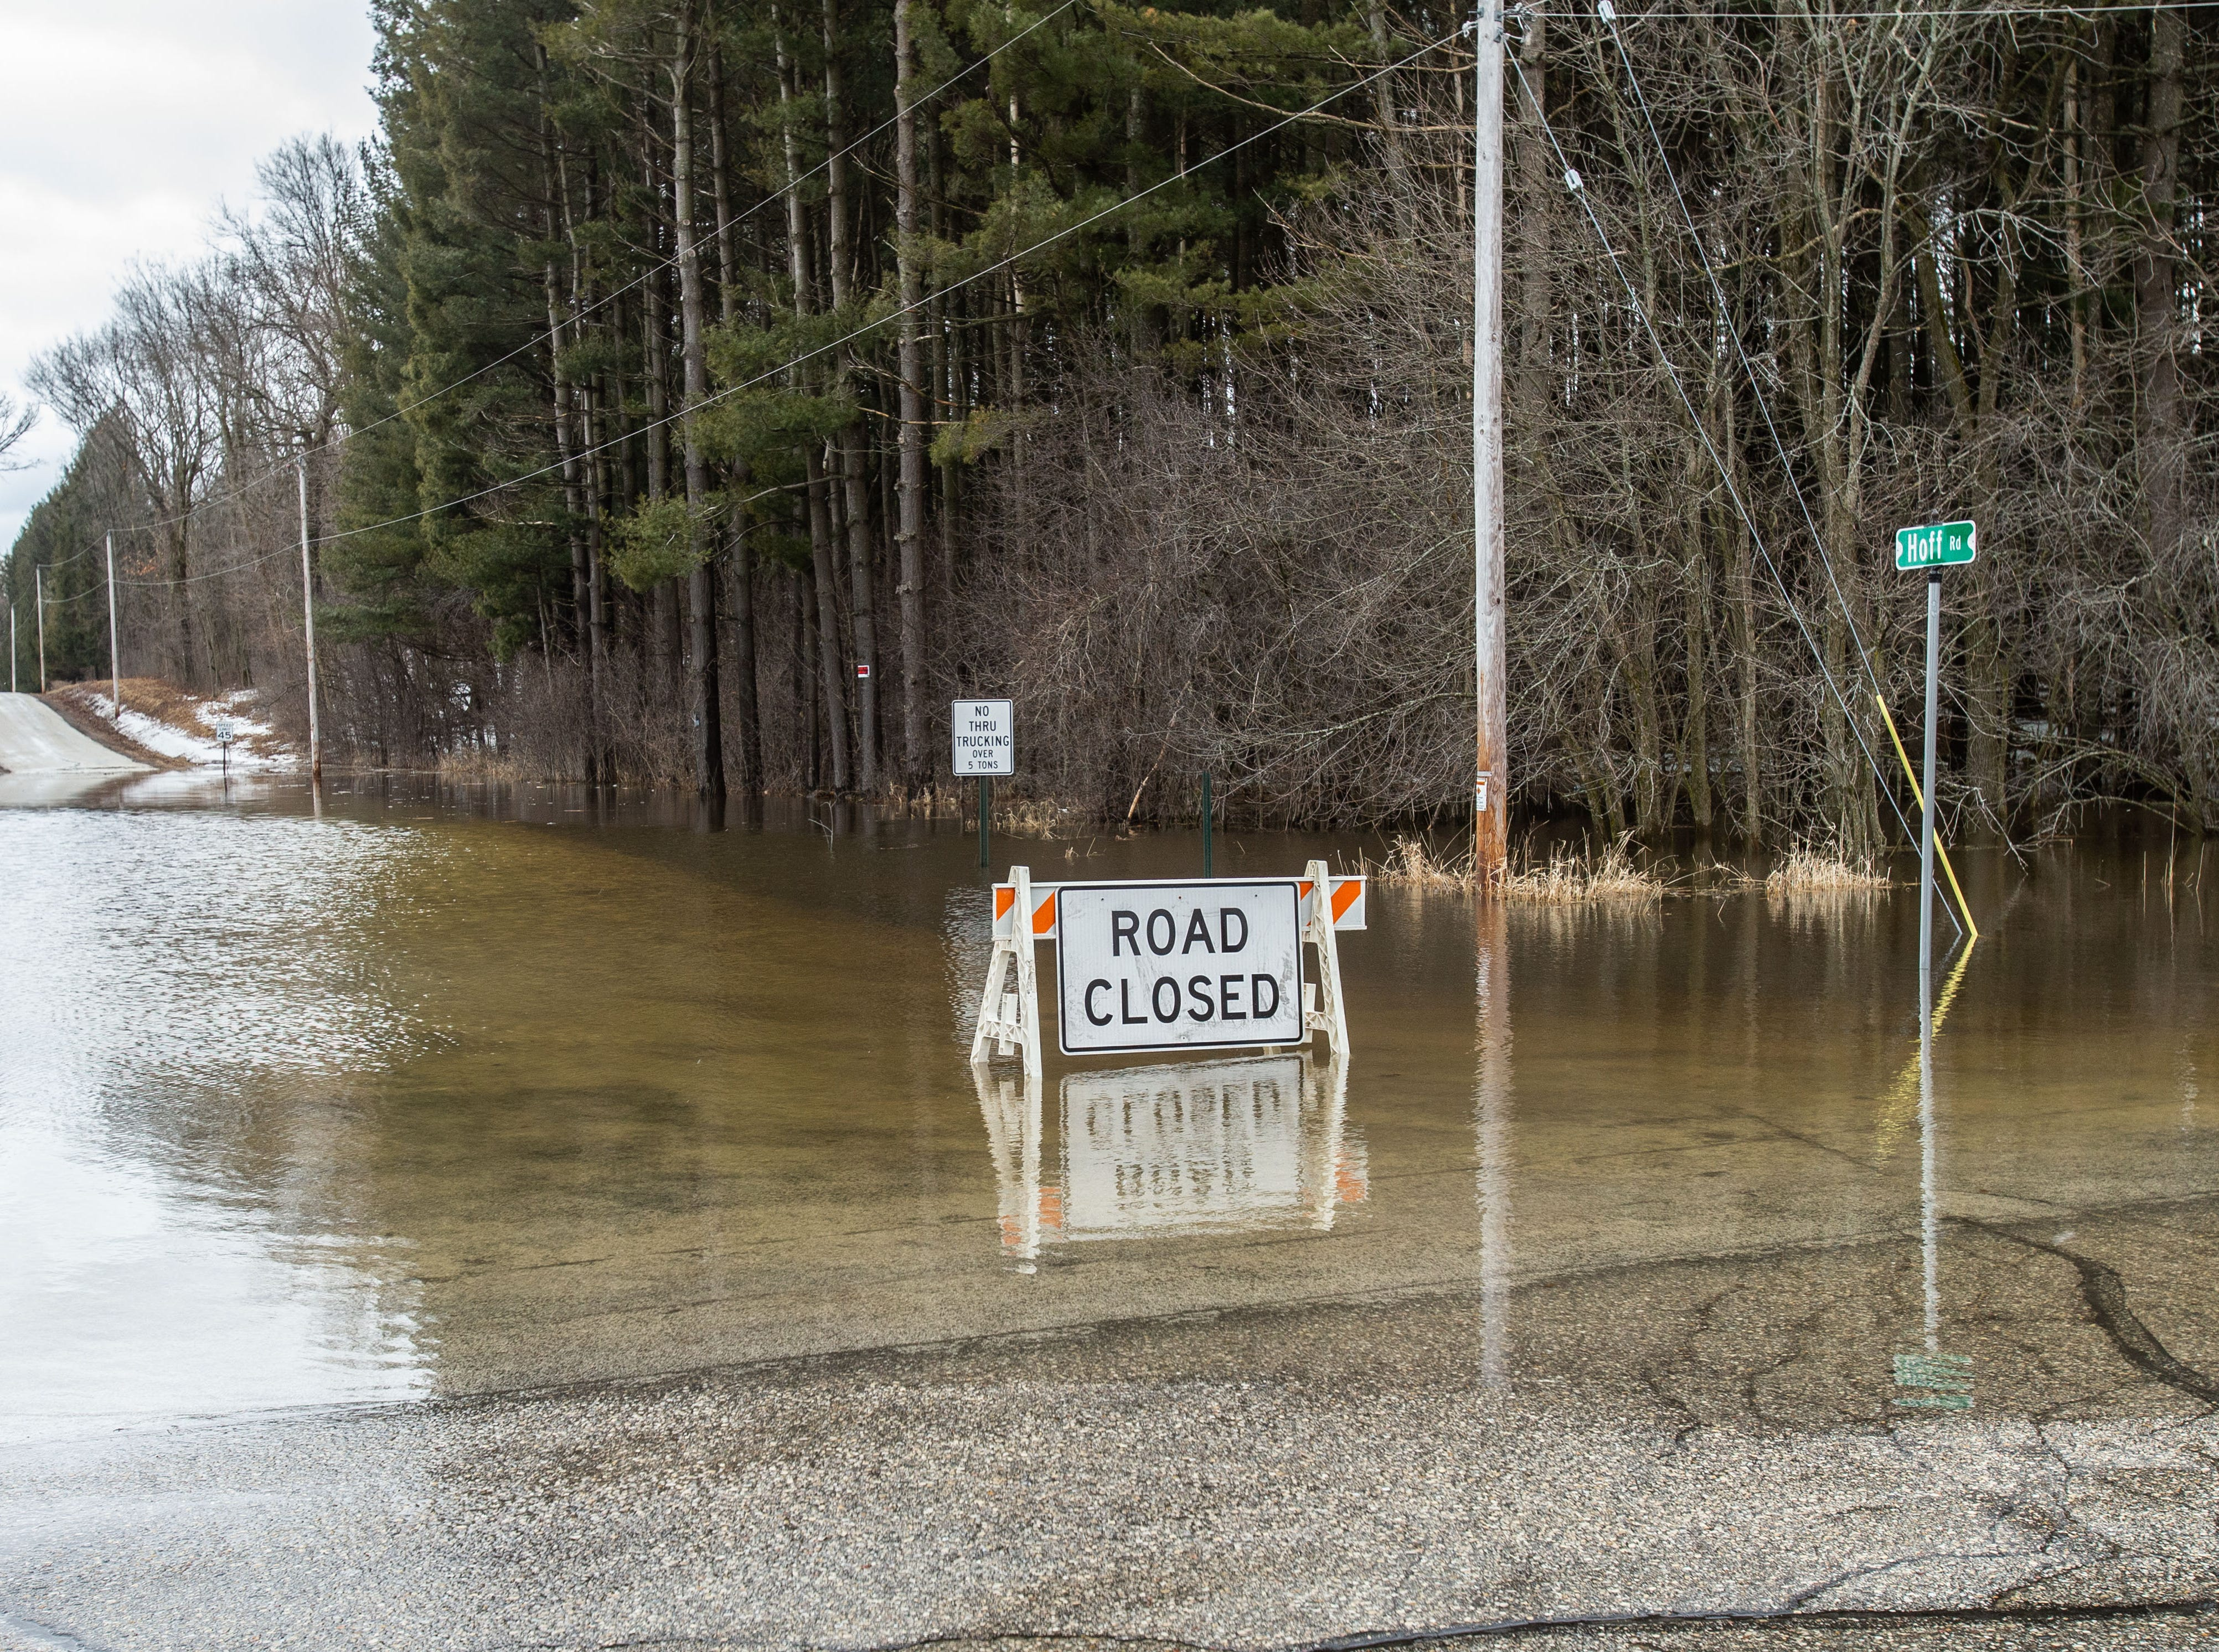 Hoff Road in Hartland is closed due to flood water at County Line Road on Friday, March 15, 2019. Spring-like temperatures caused flooding across both Washington and Waukesha counties.